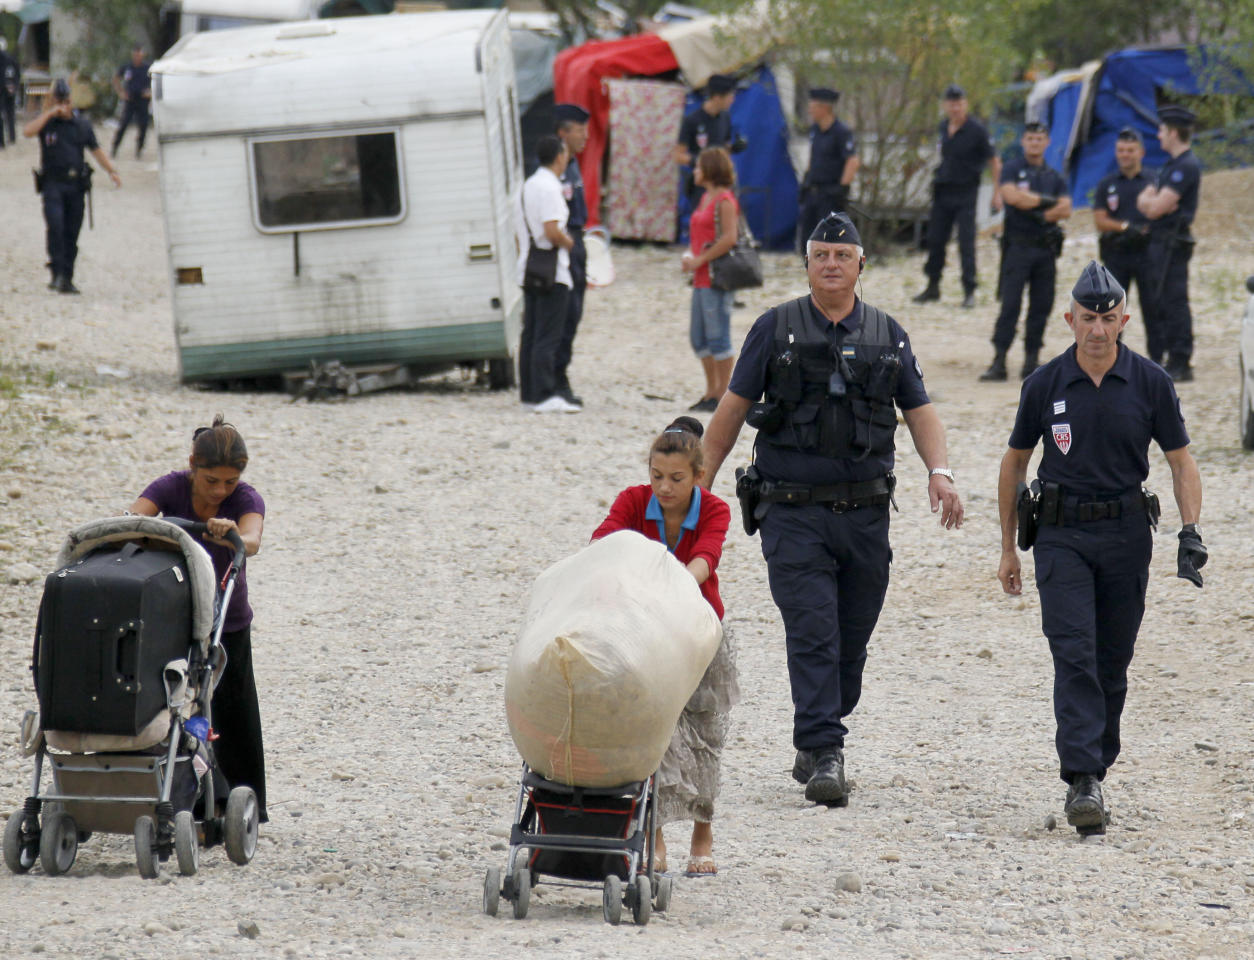 """French CRS police evacuate families and remove their caravans from an illegal camp housing about 114 Roma, referred to as """"Gens du Voyage"""", in Saint-Priest, near Lyon, Southeastern France, August 28, 2012. The French Interior minister said on Monday he would ask Romania and Bulgaria to do more to integrate their Roma minorities as the new government in Paris grapples with how to handle Roma immigrants in France.   REUTERS/Robert Pratta   (FRANCE - Tags: SOCIETY IMMIGRATION POLITICS)"""